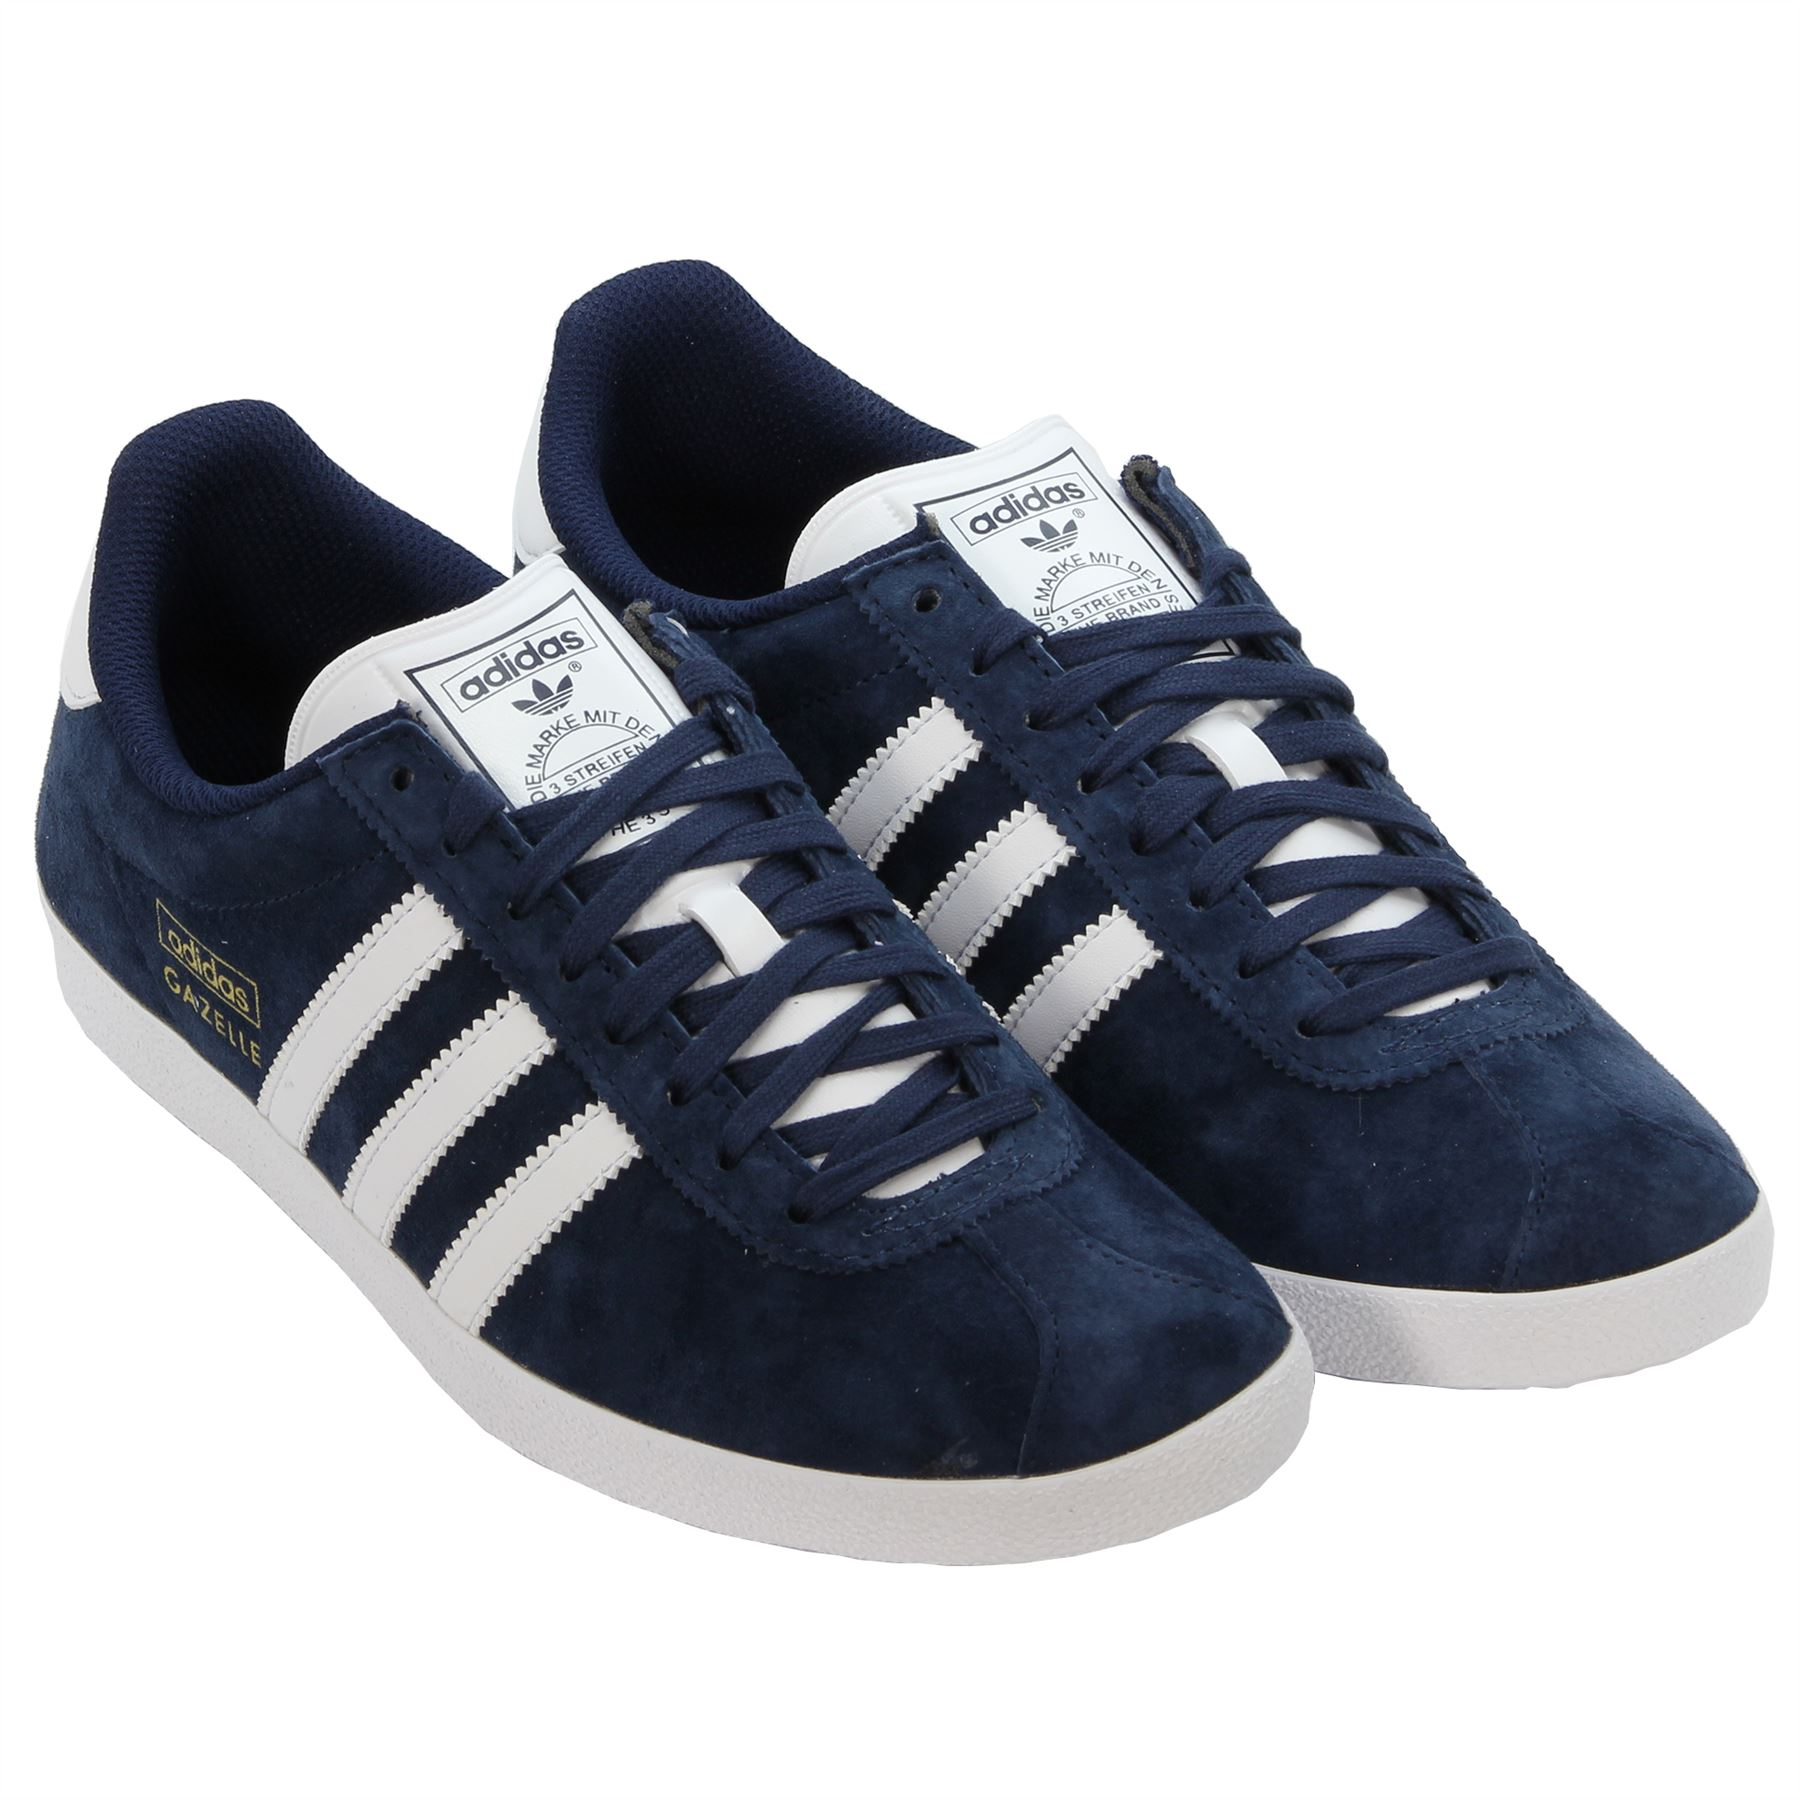 ADIDAS ORIGINALS GAZELLE OG NAVY TRAINERS SIZES 7 12 SNEAKERS CASUAL SHOES NEW